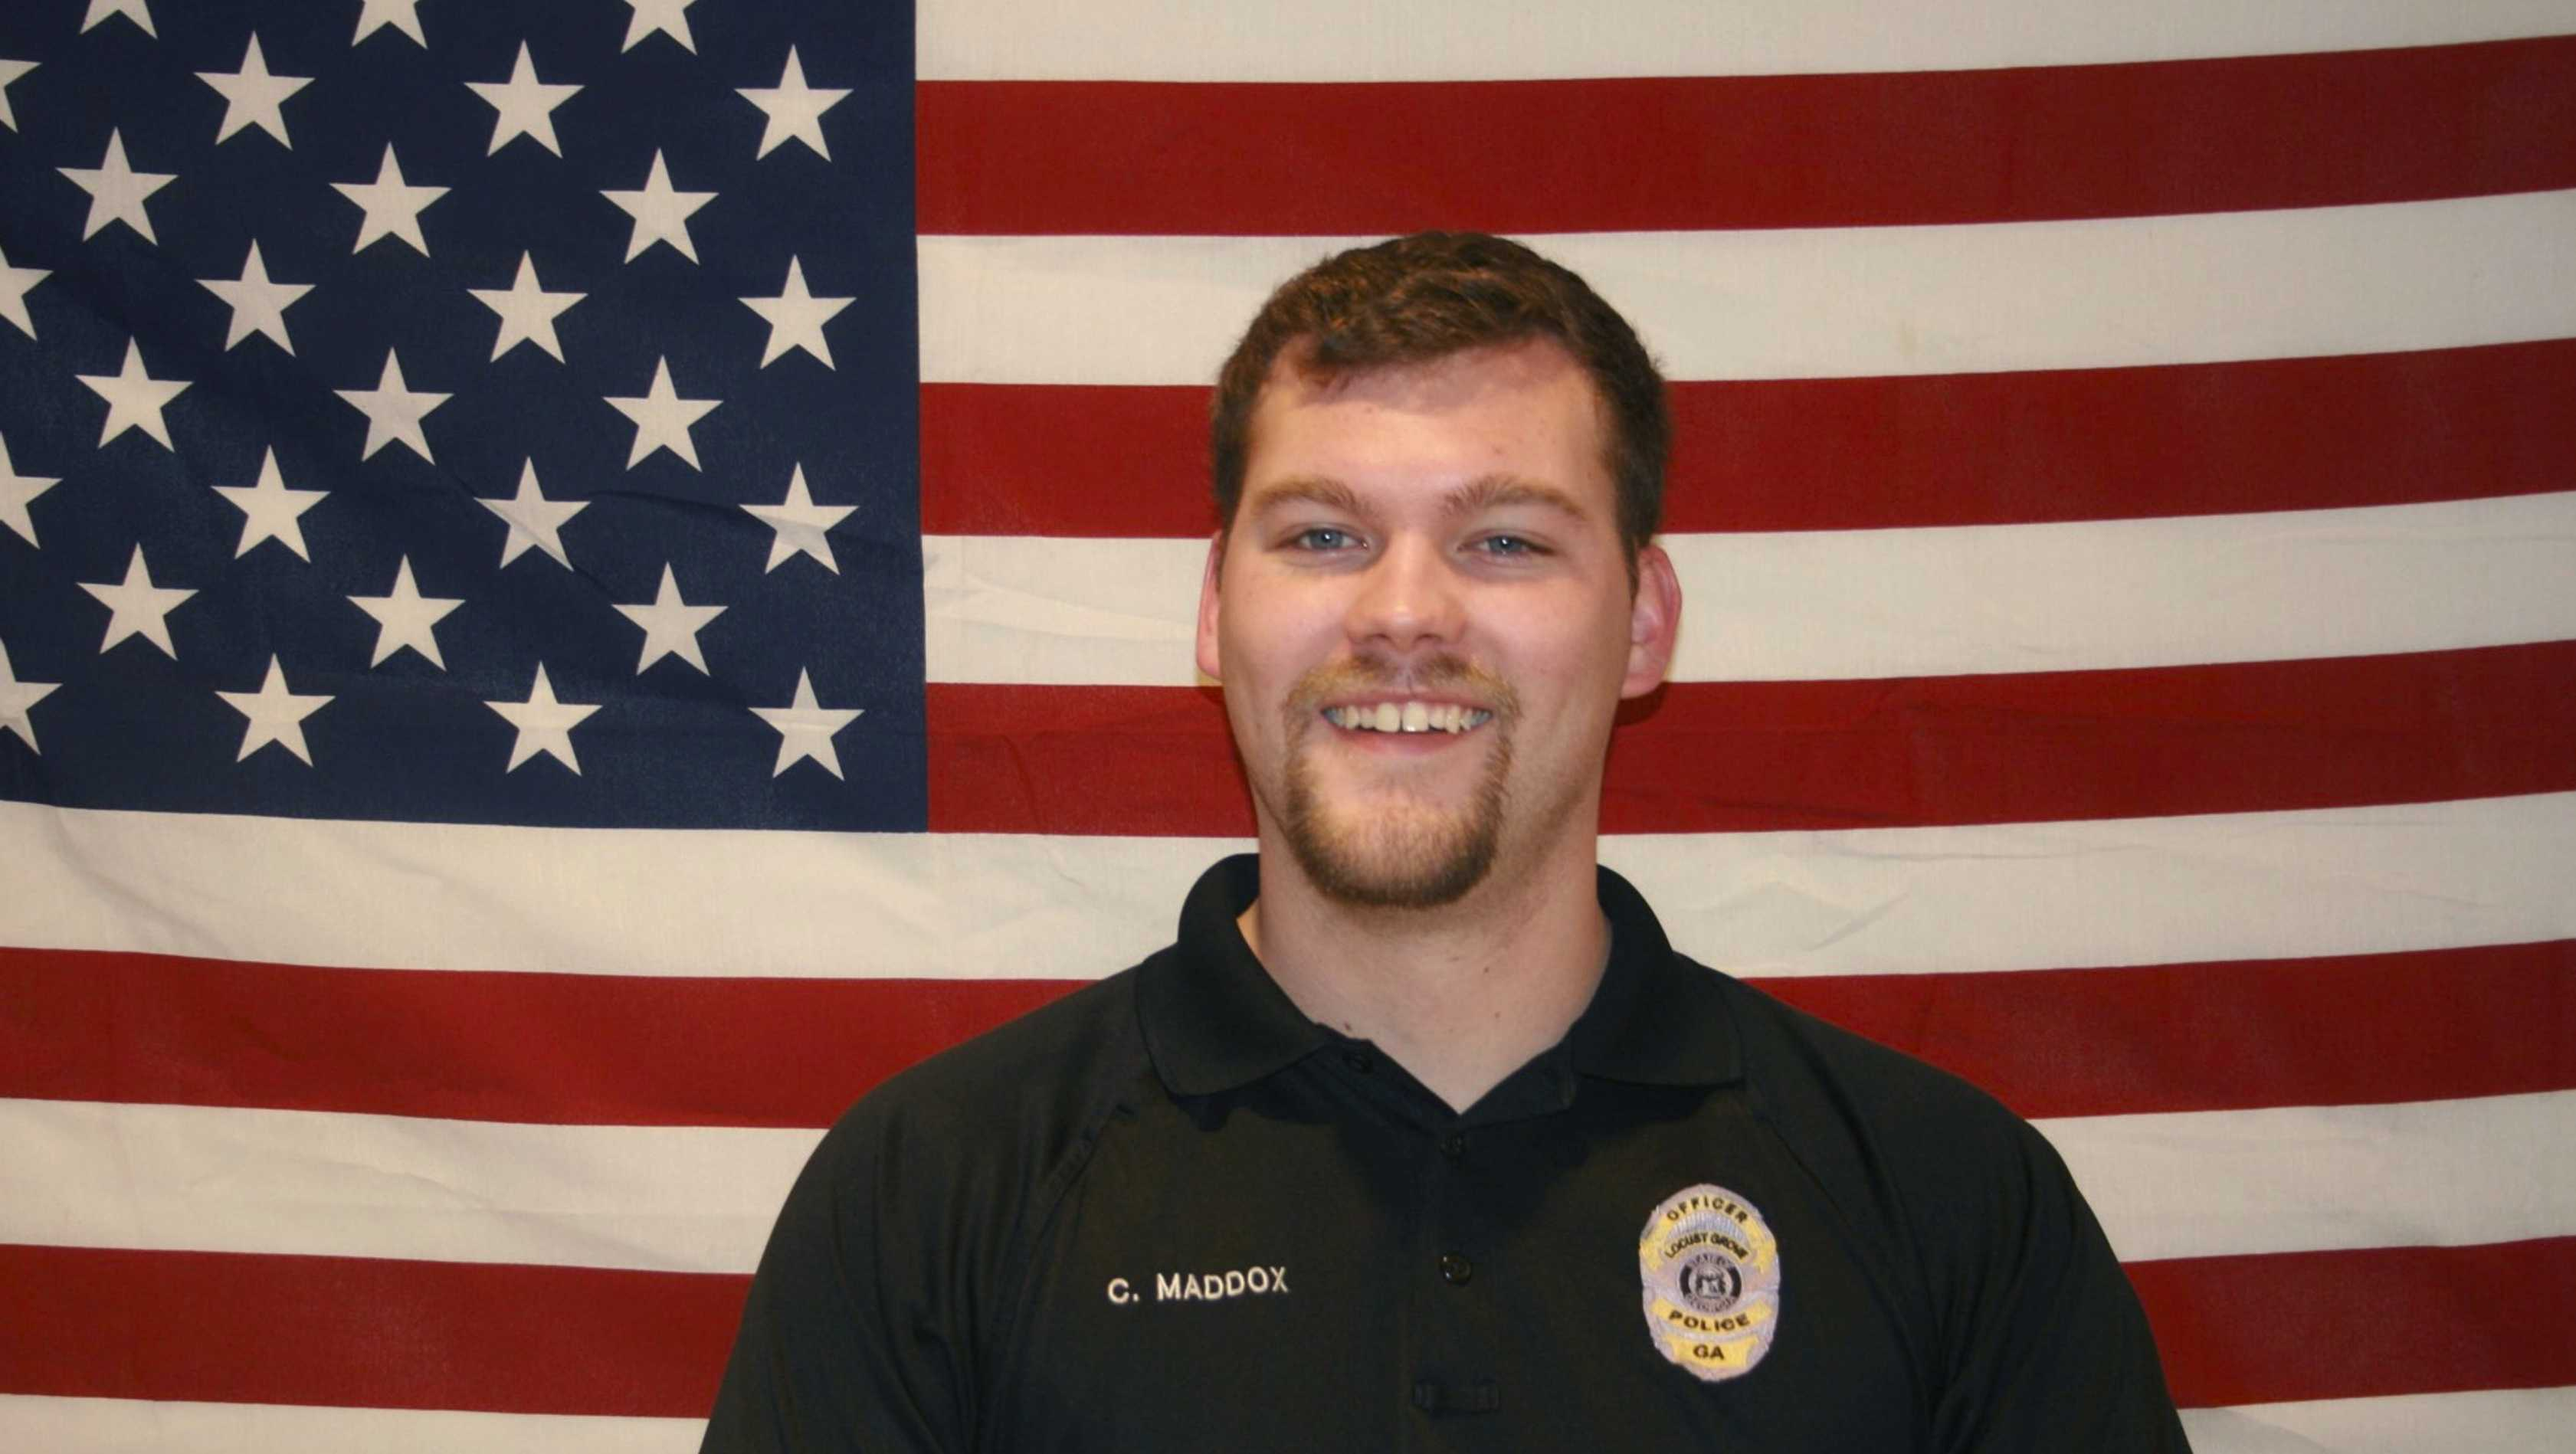 This photo provided by Georgia Bureau of Investigation shows Locust Grove Officer Chase Maddox. Maddox was killed Friday, Feb. 9, 2018, and two deputies were seriously wounded in a shooting that also left a suspect dead south of Atlanta, authorities said.